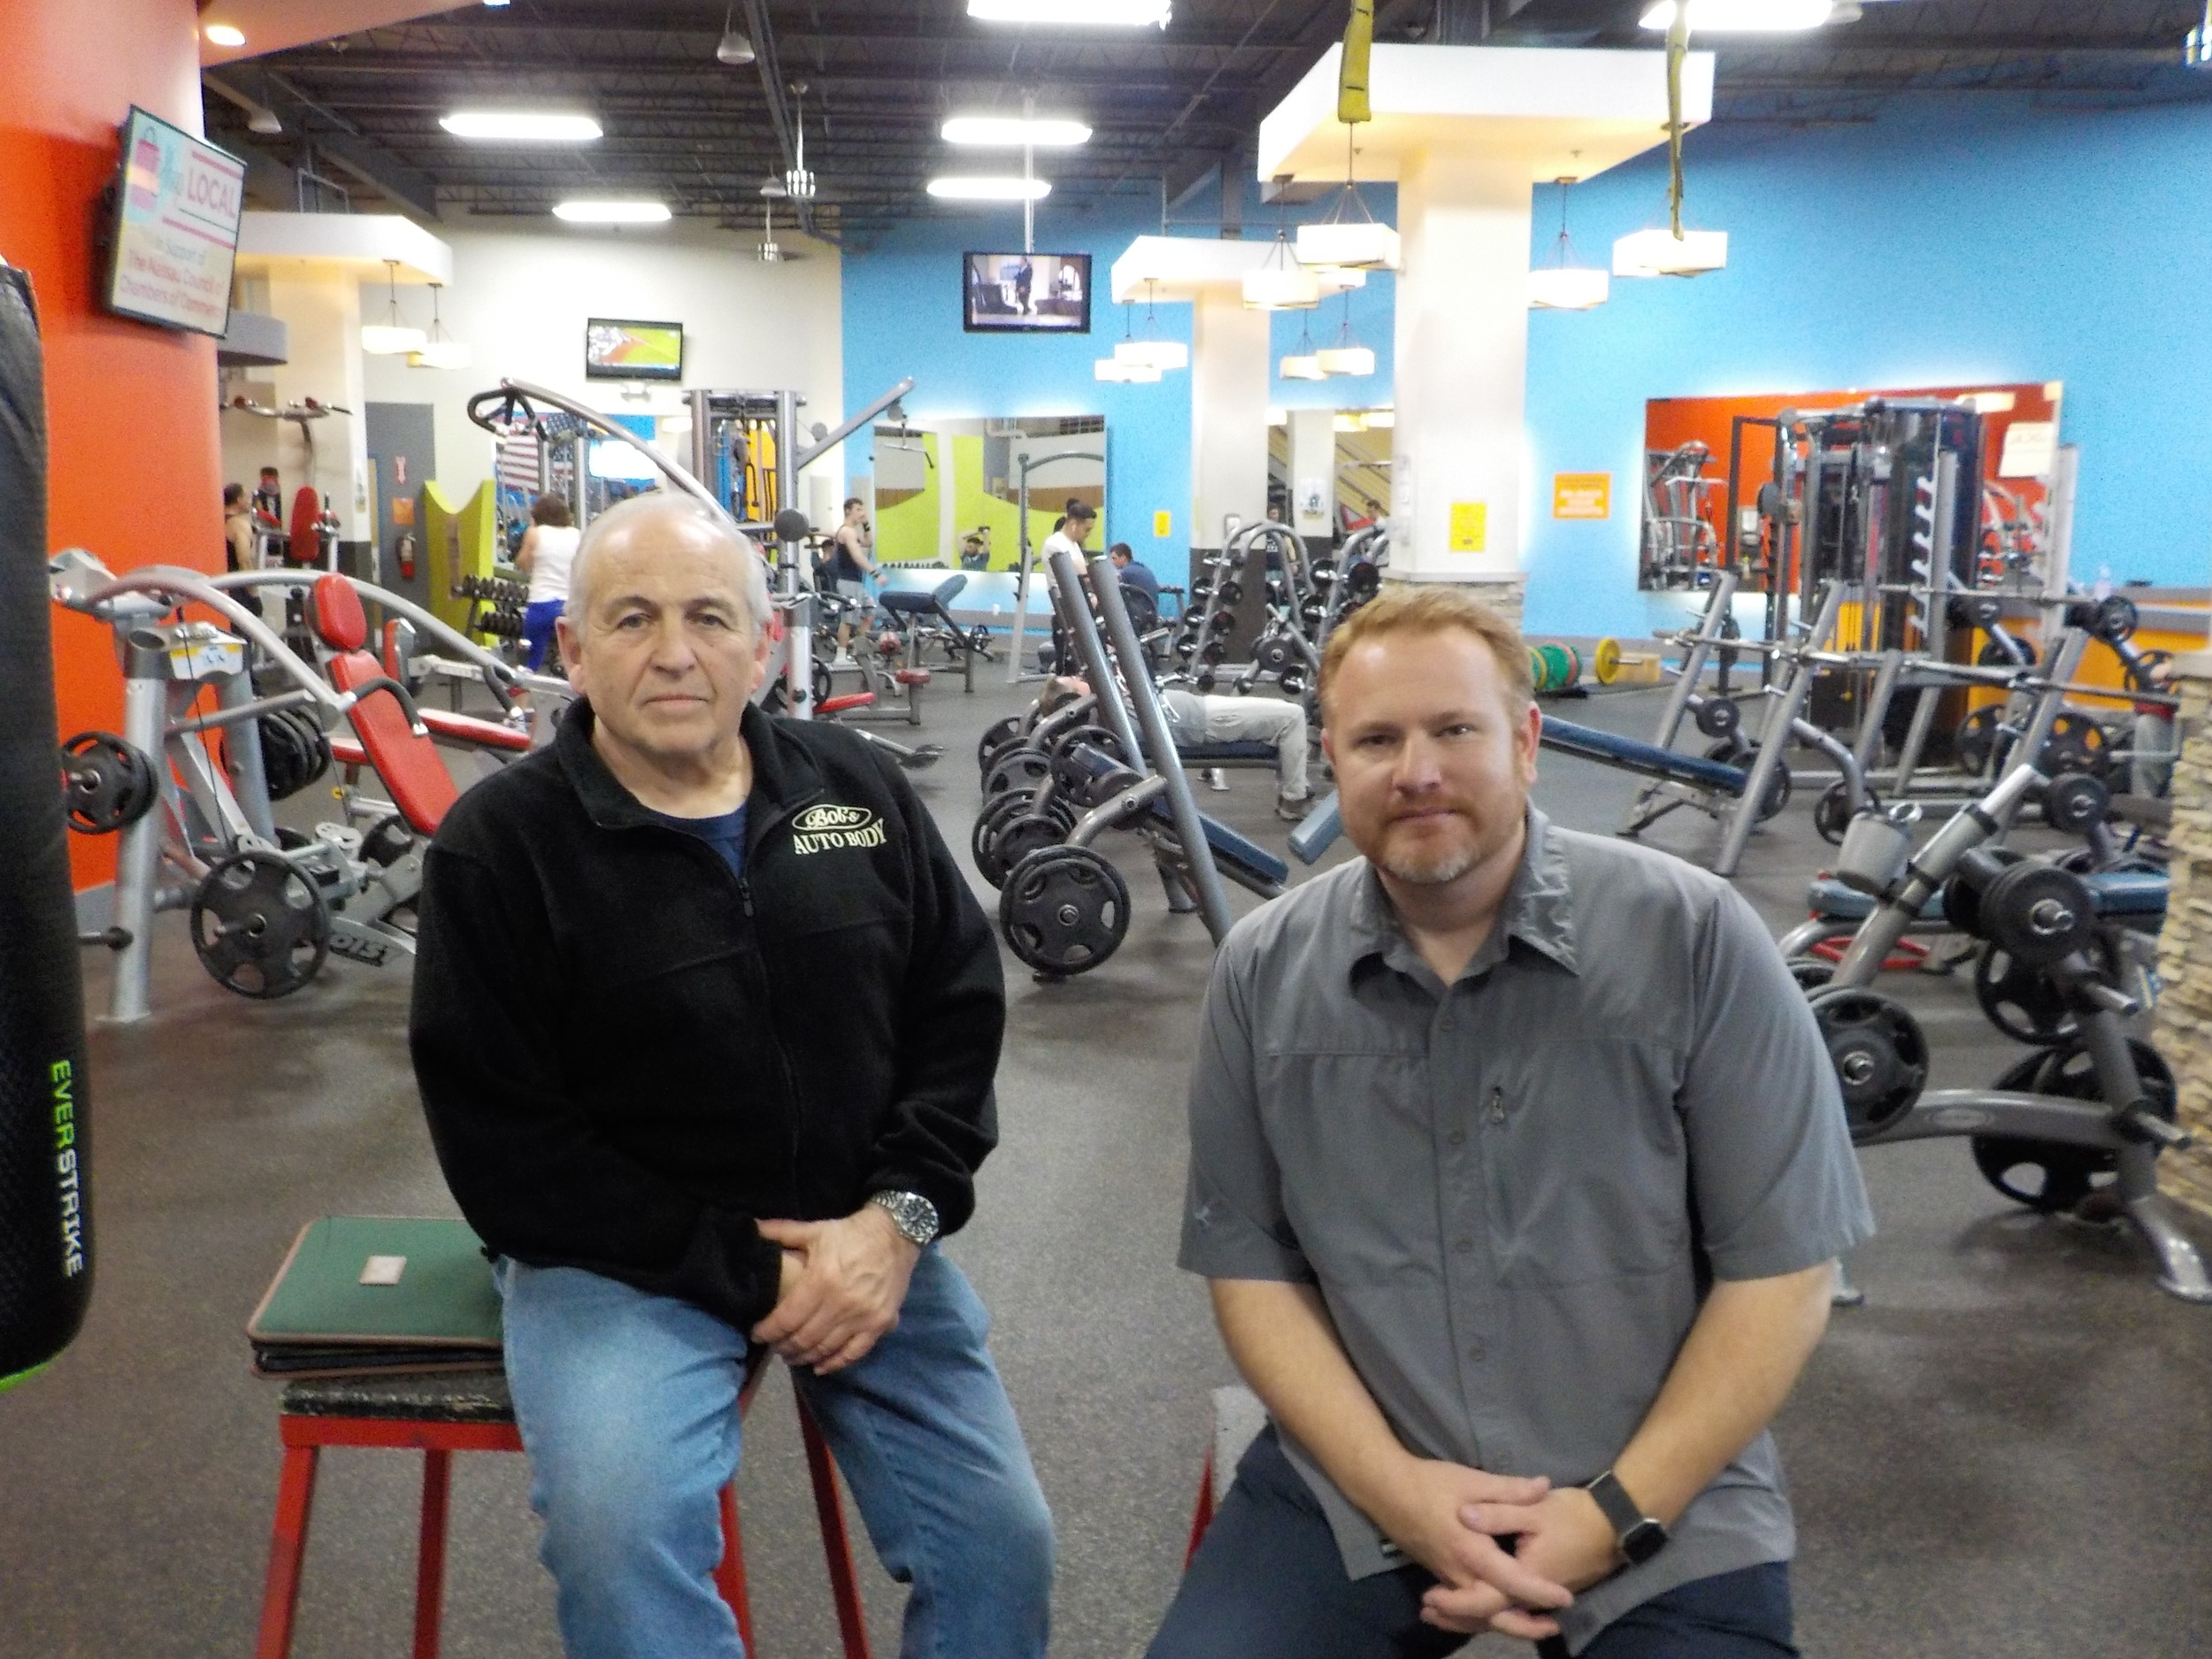 ROK Health & Fitness owners Robert D'Urso, left, and Mike Hawksby decided to give back to their members in  the form of rebate checks while celebrating their gym's fifth anniversary.